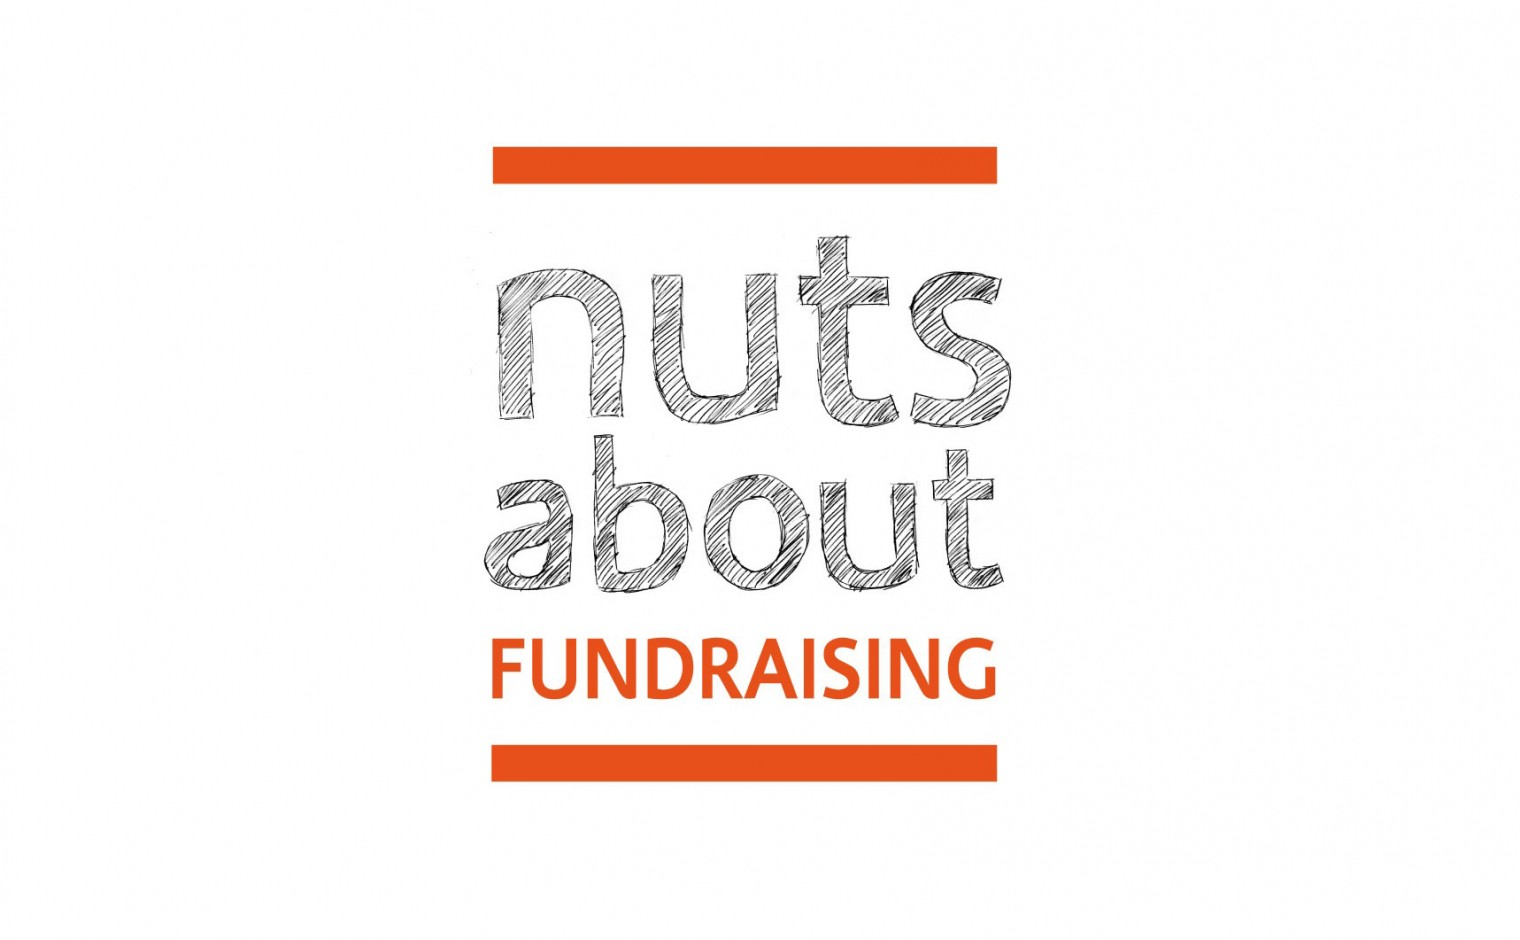 Ben jij nuts about fundraising